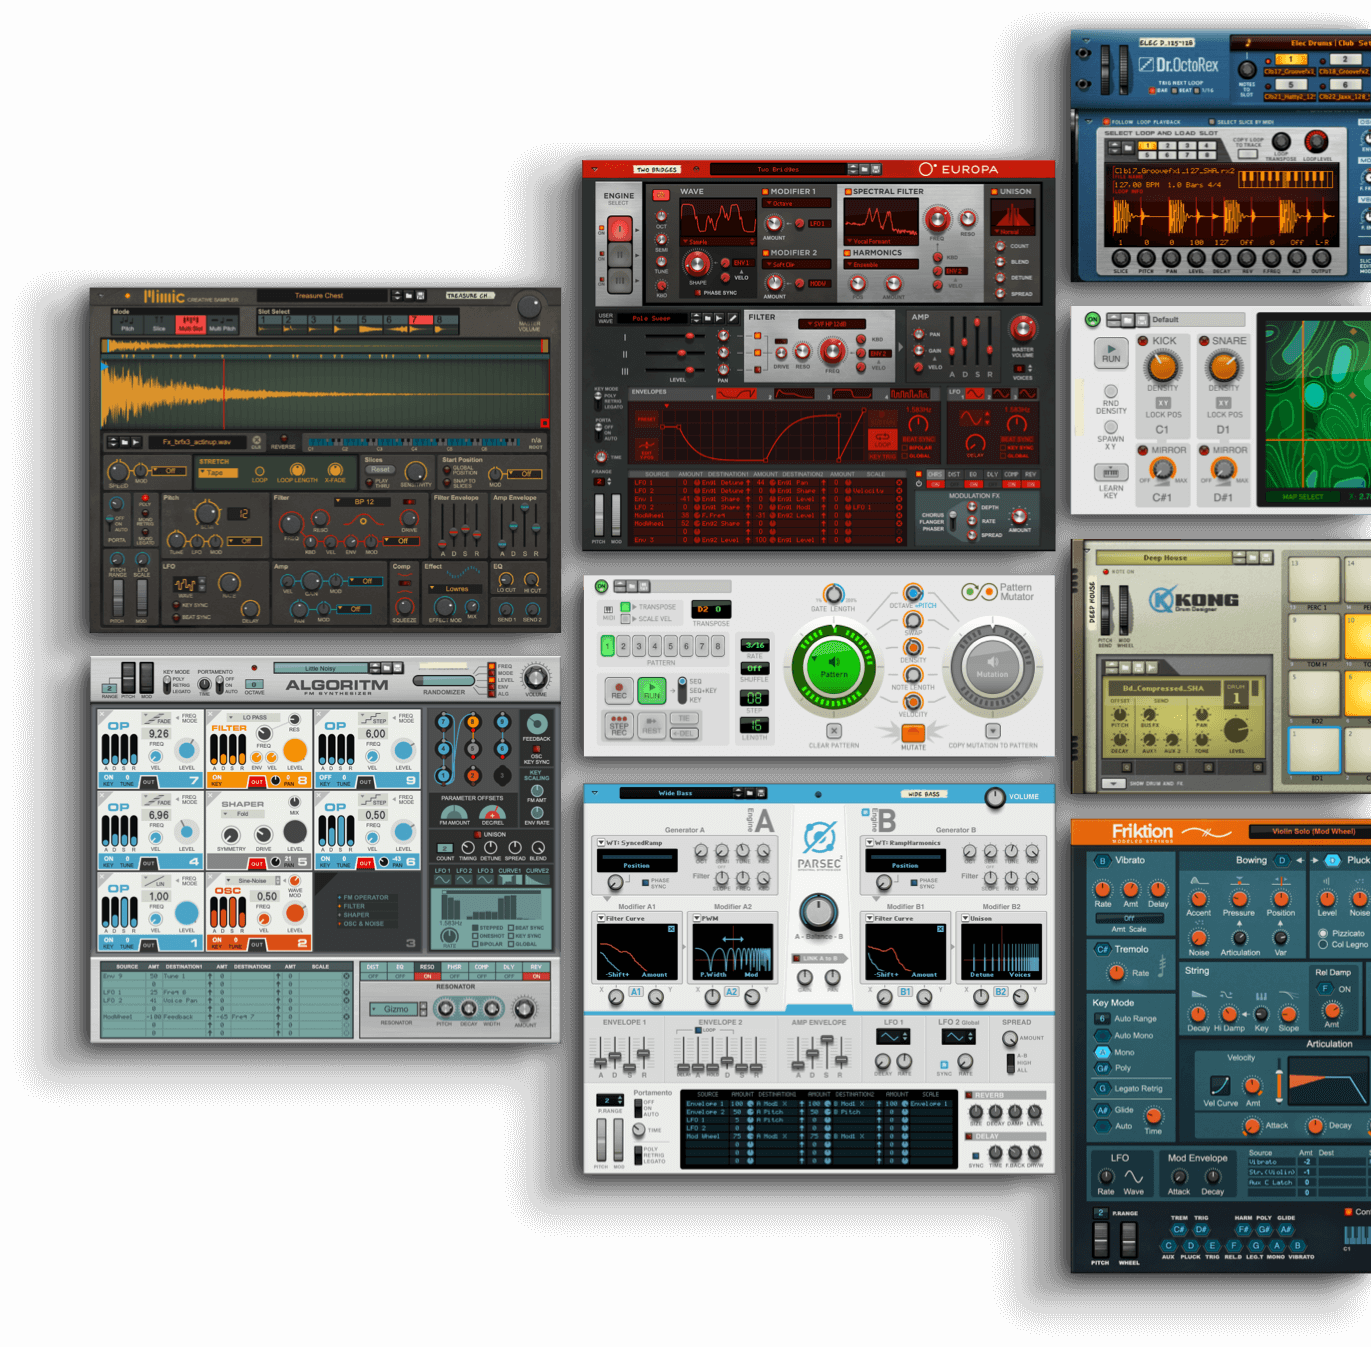 Devices collage